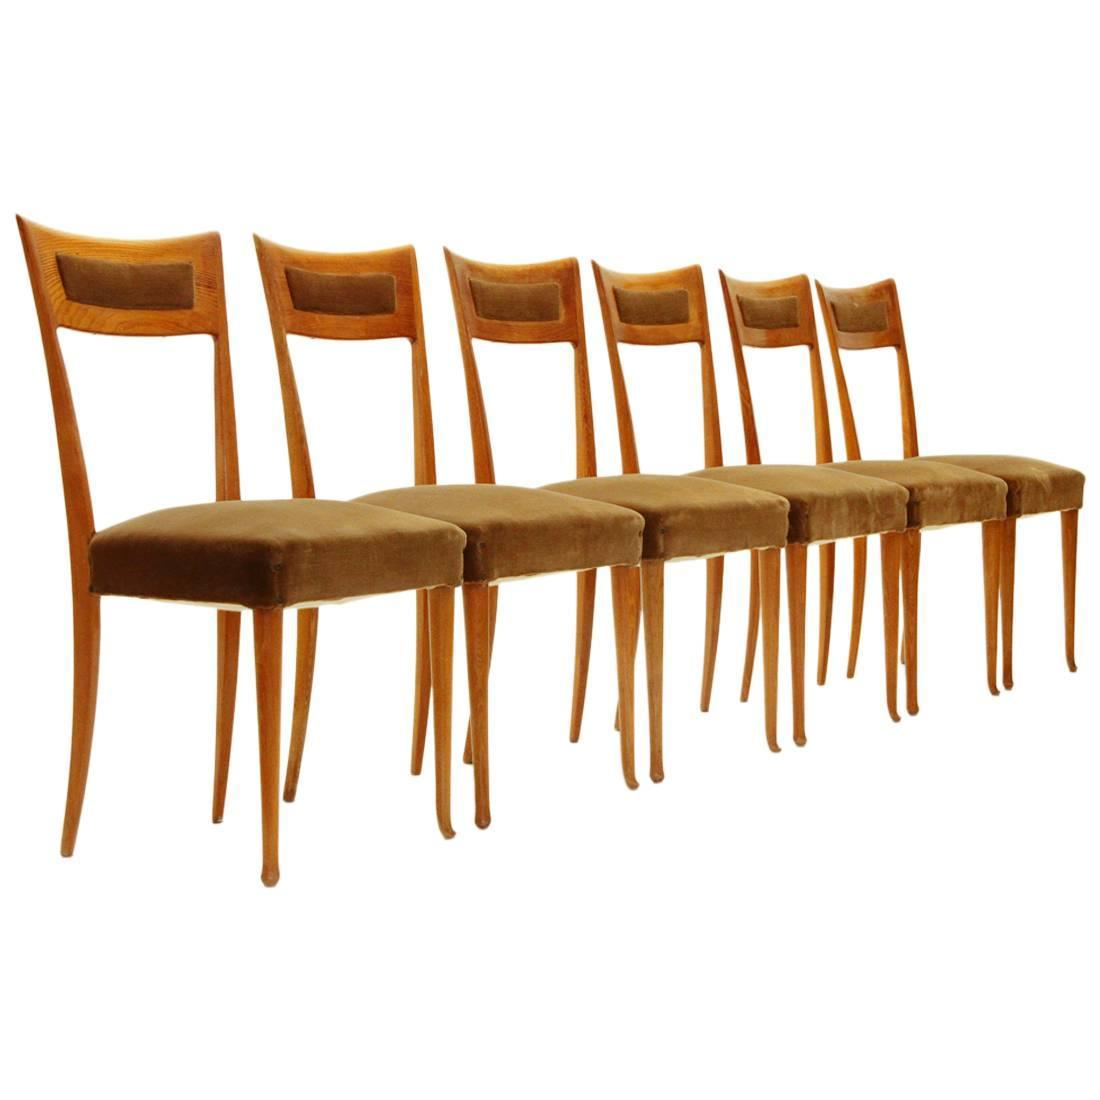 Italian Wooden Chairs 1950s Set Of Six At 1stdibs